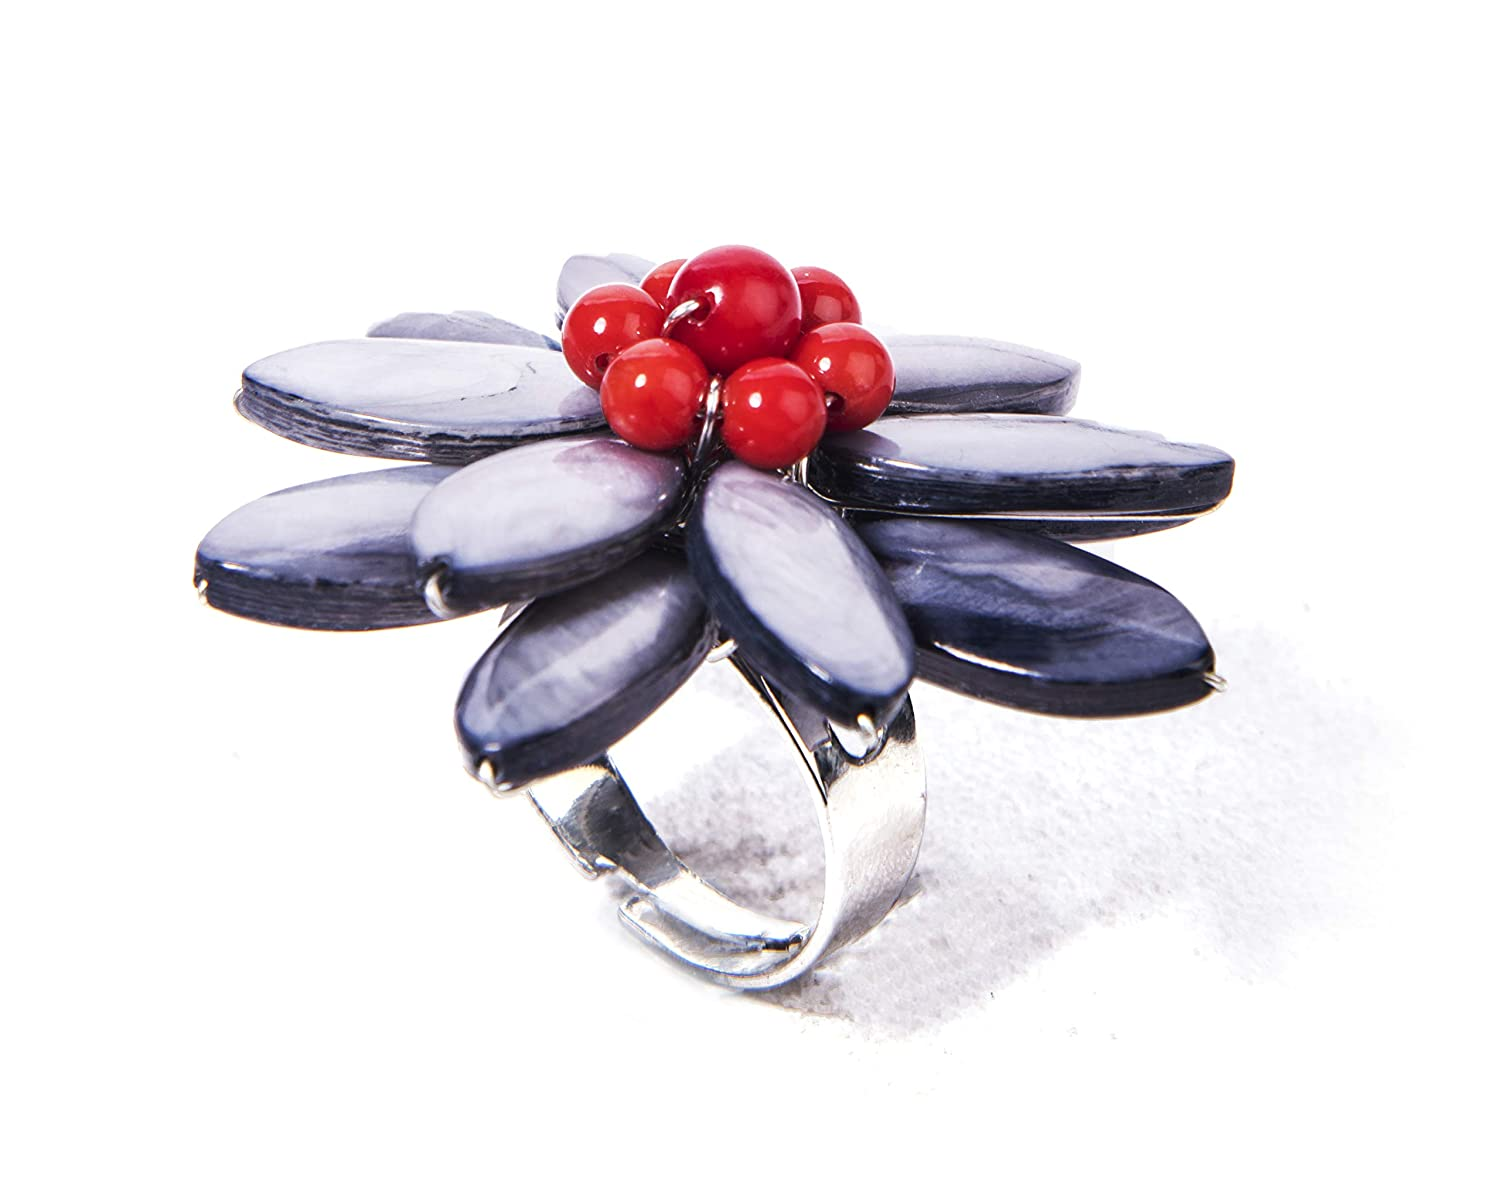 Buy Gempro Gems Jewelry Genuine Mother Of Pearl And Red Coral Gemstones Floral Designer Adjustable Fashion Ring For Women At Amazon In